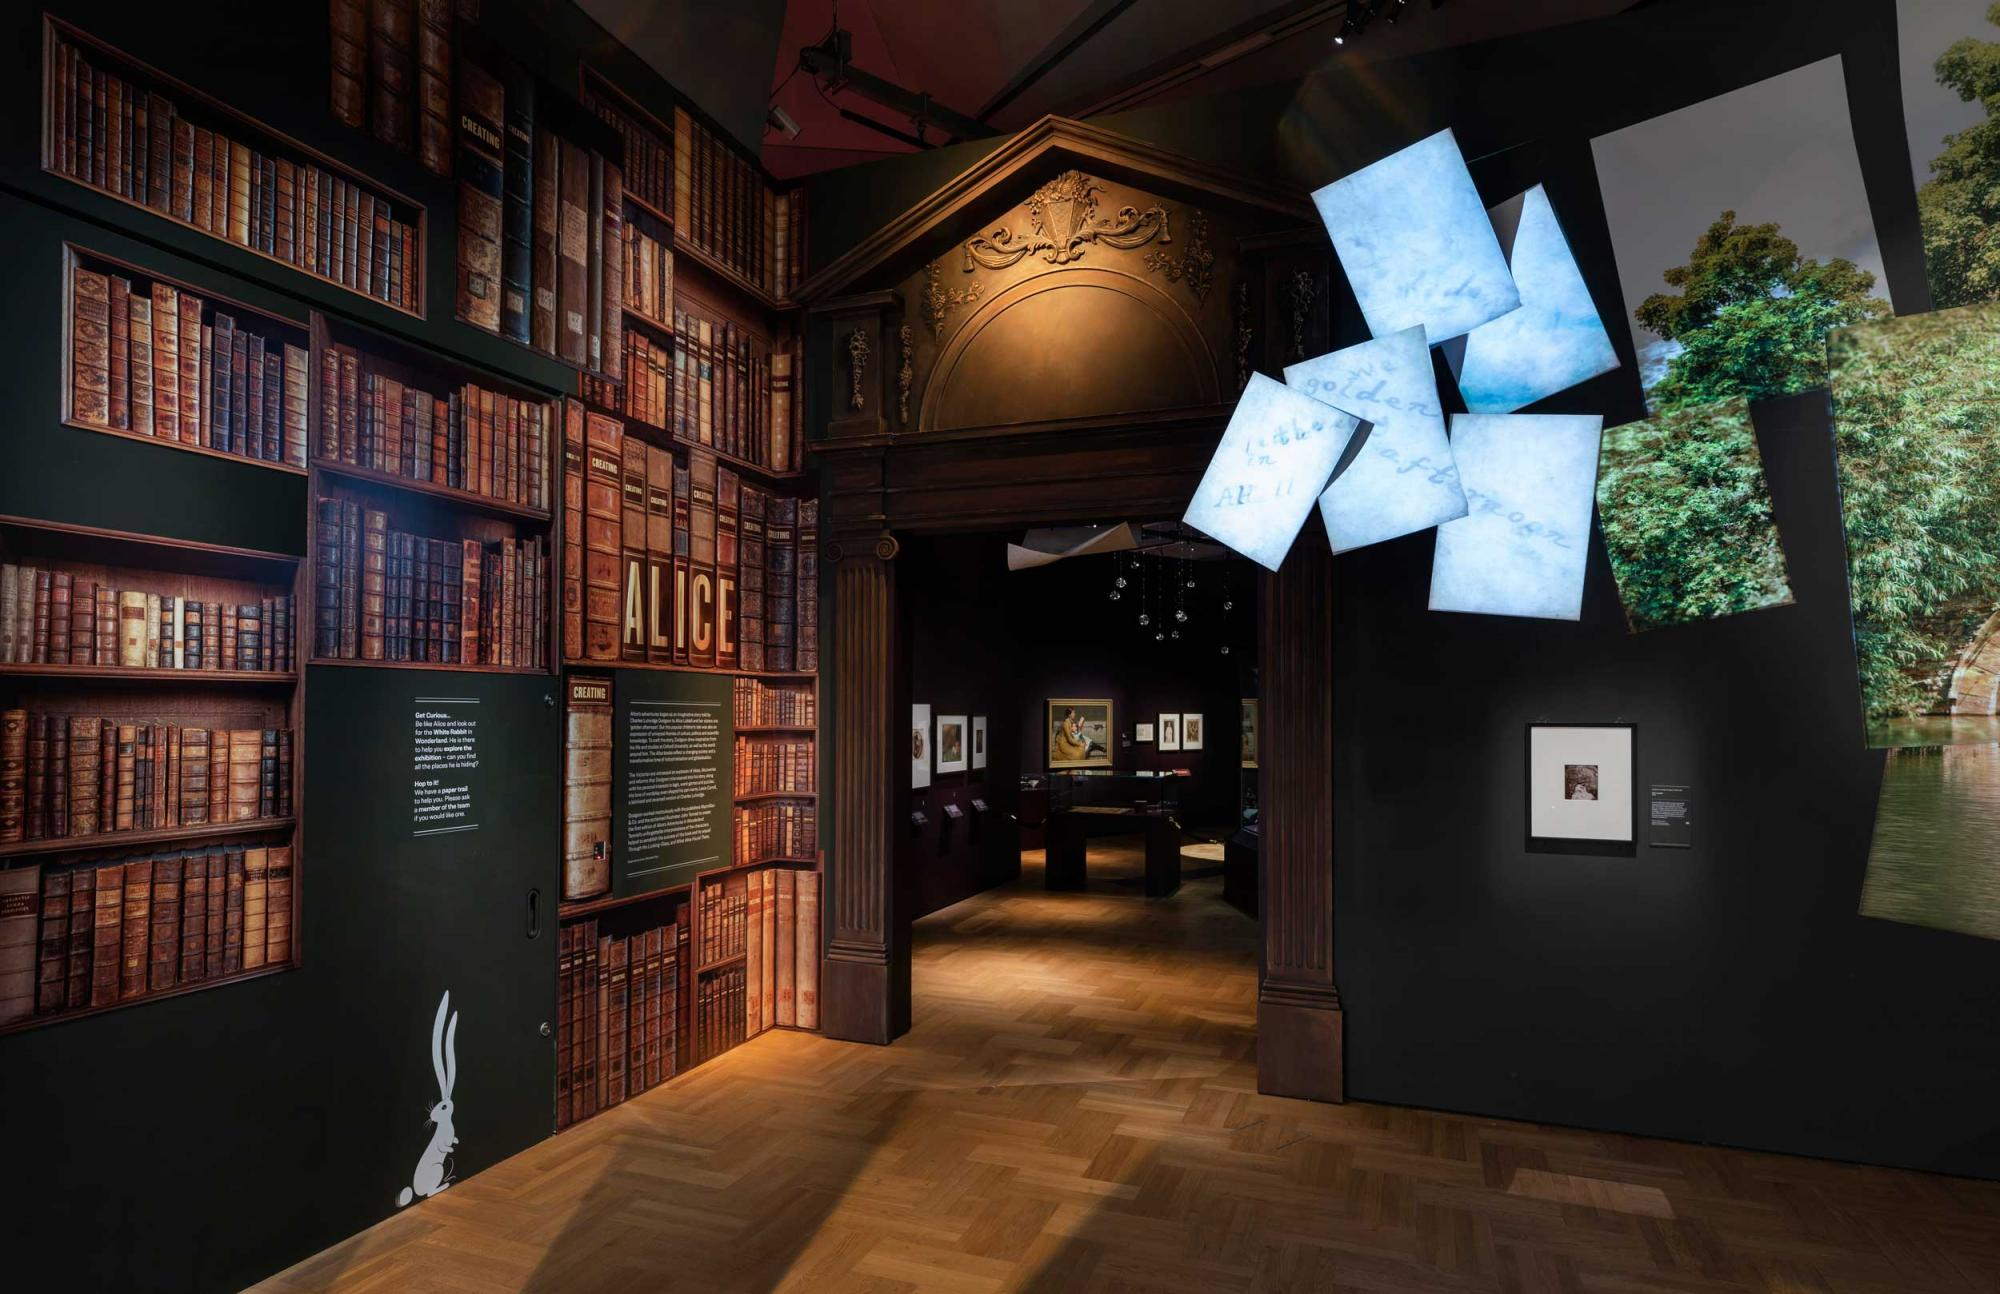 Alice-Curiouser-and-Curiouser,-May-2021,-Installation-Image-(c)-Victoria-and-Albert-Museum,-London-(3).jpg